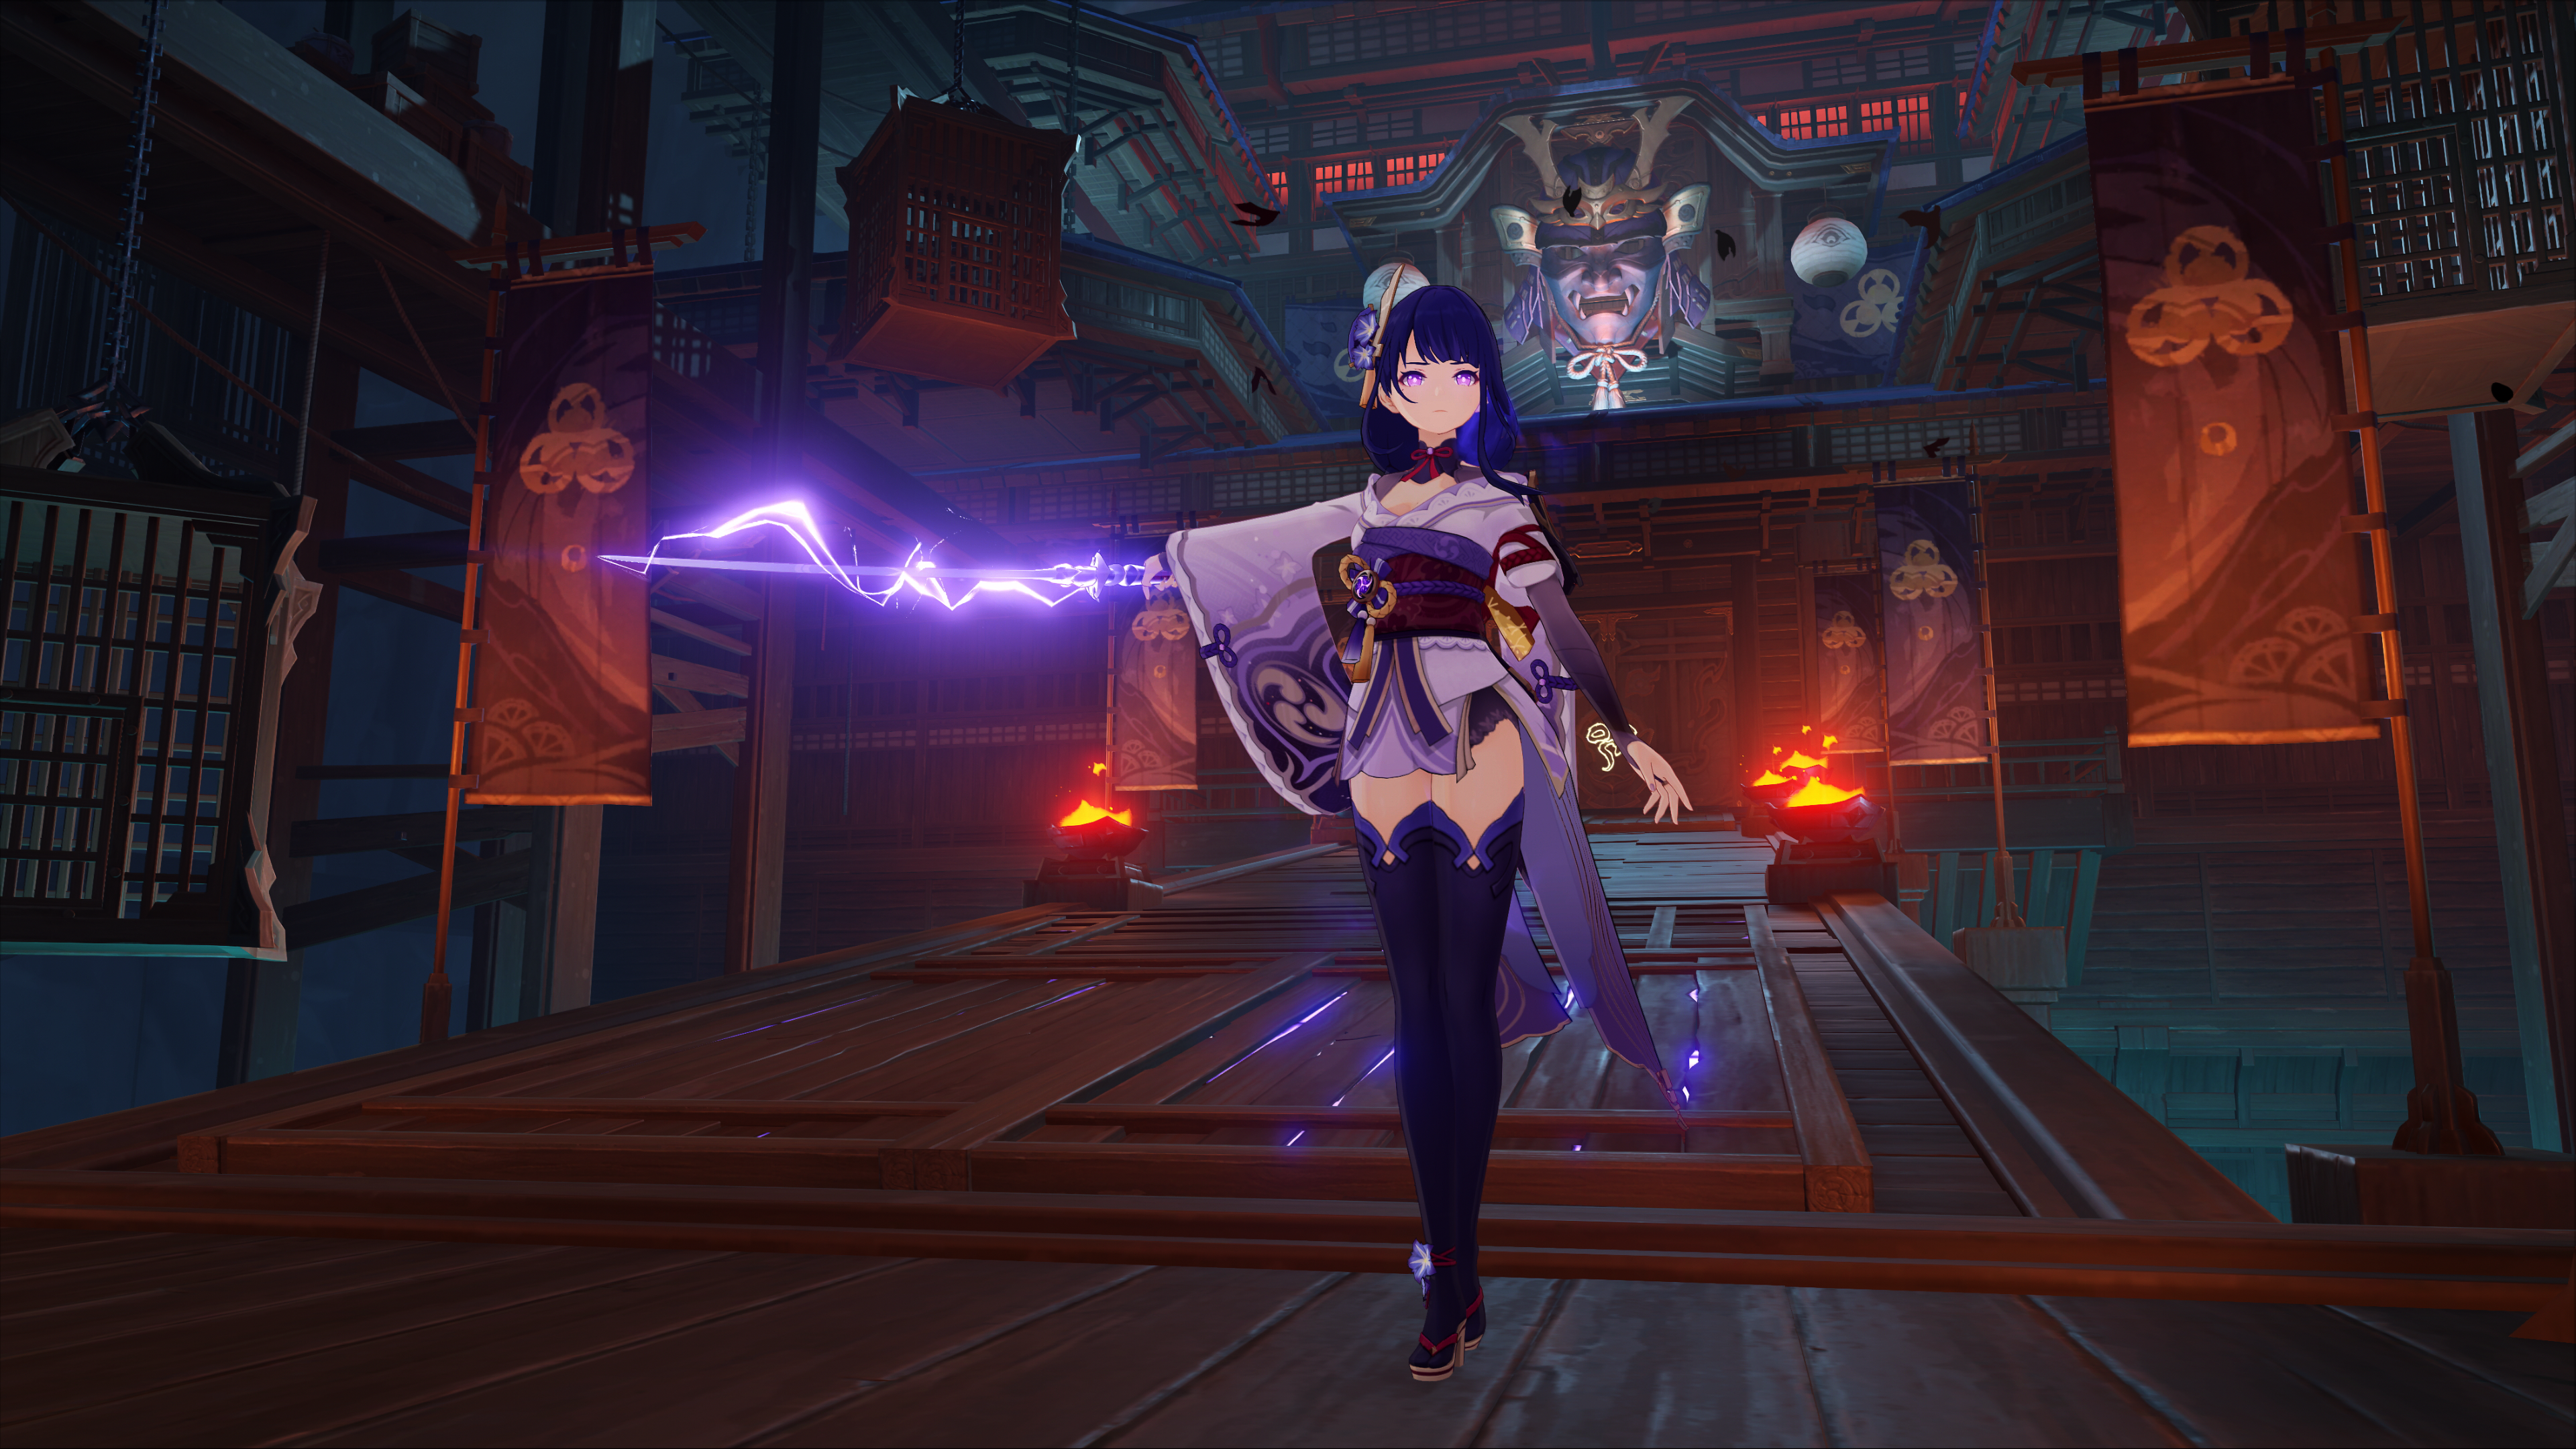 Raiden Shogun also known as Baal in Genshin Impact. She's holding her sword out and purple electricity is sparking from it